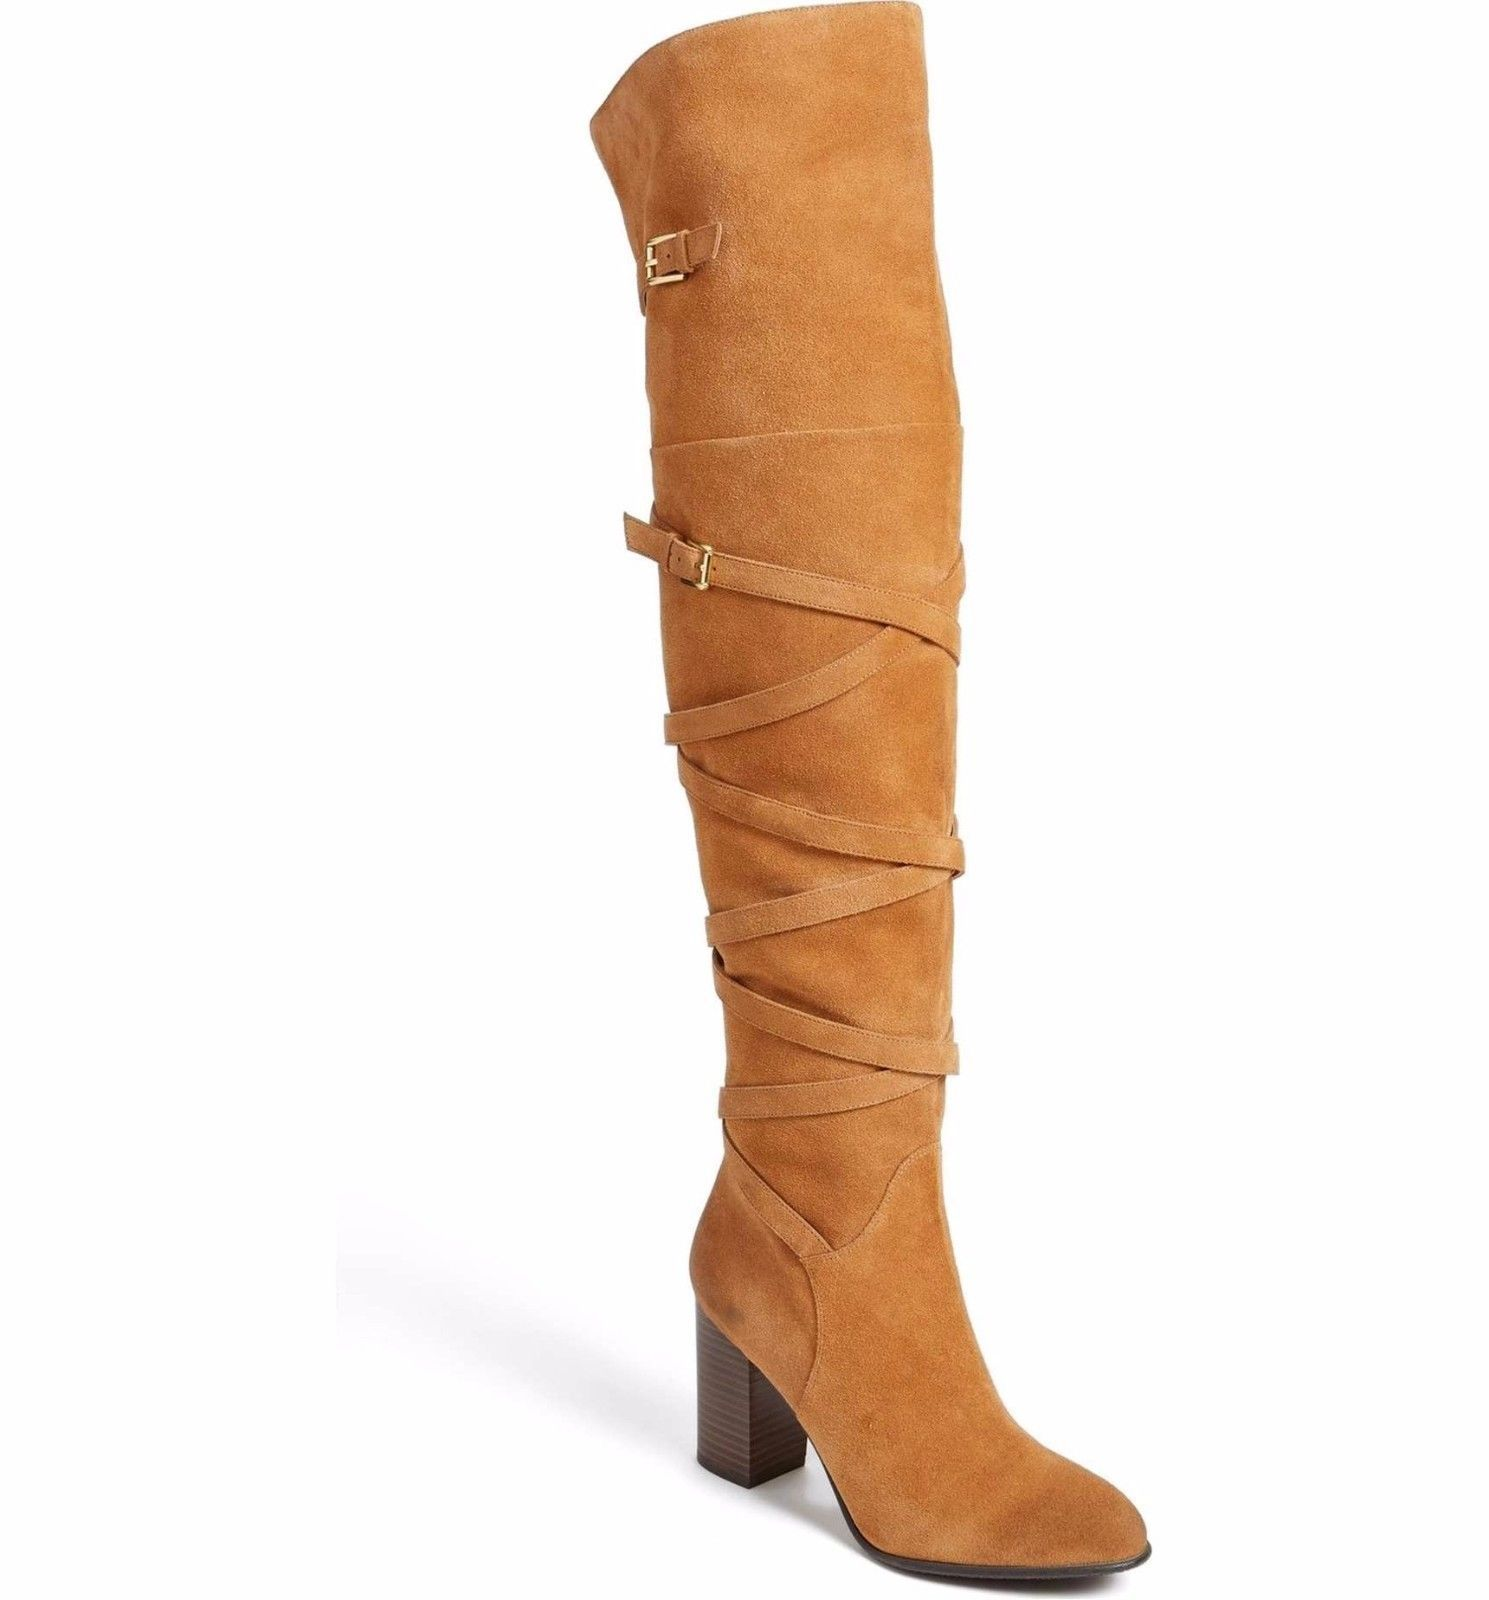 281786961dc3 S l1600. S l1600. Previous.  325 SAM EDELMAN Sable Tall Leather Suede  Buckle OTK Over The Knee Boots ...